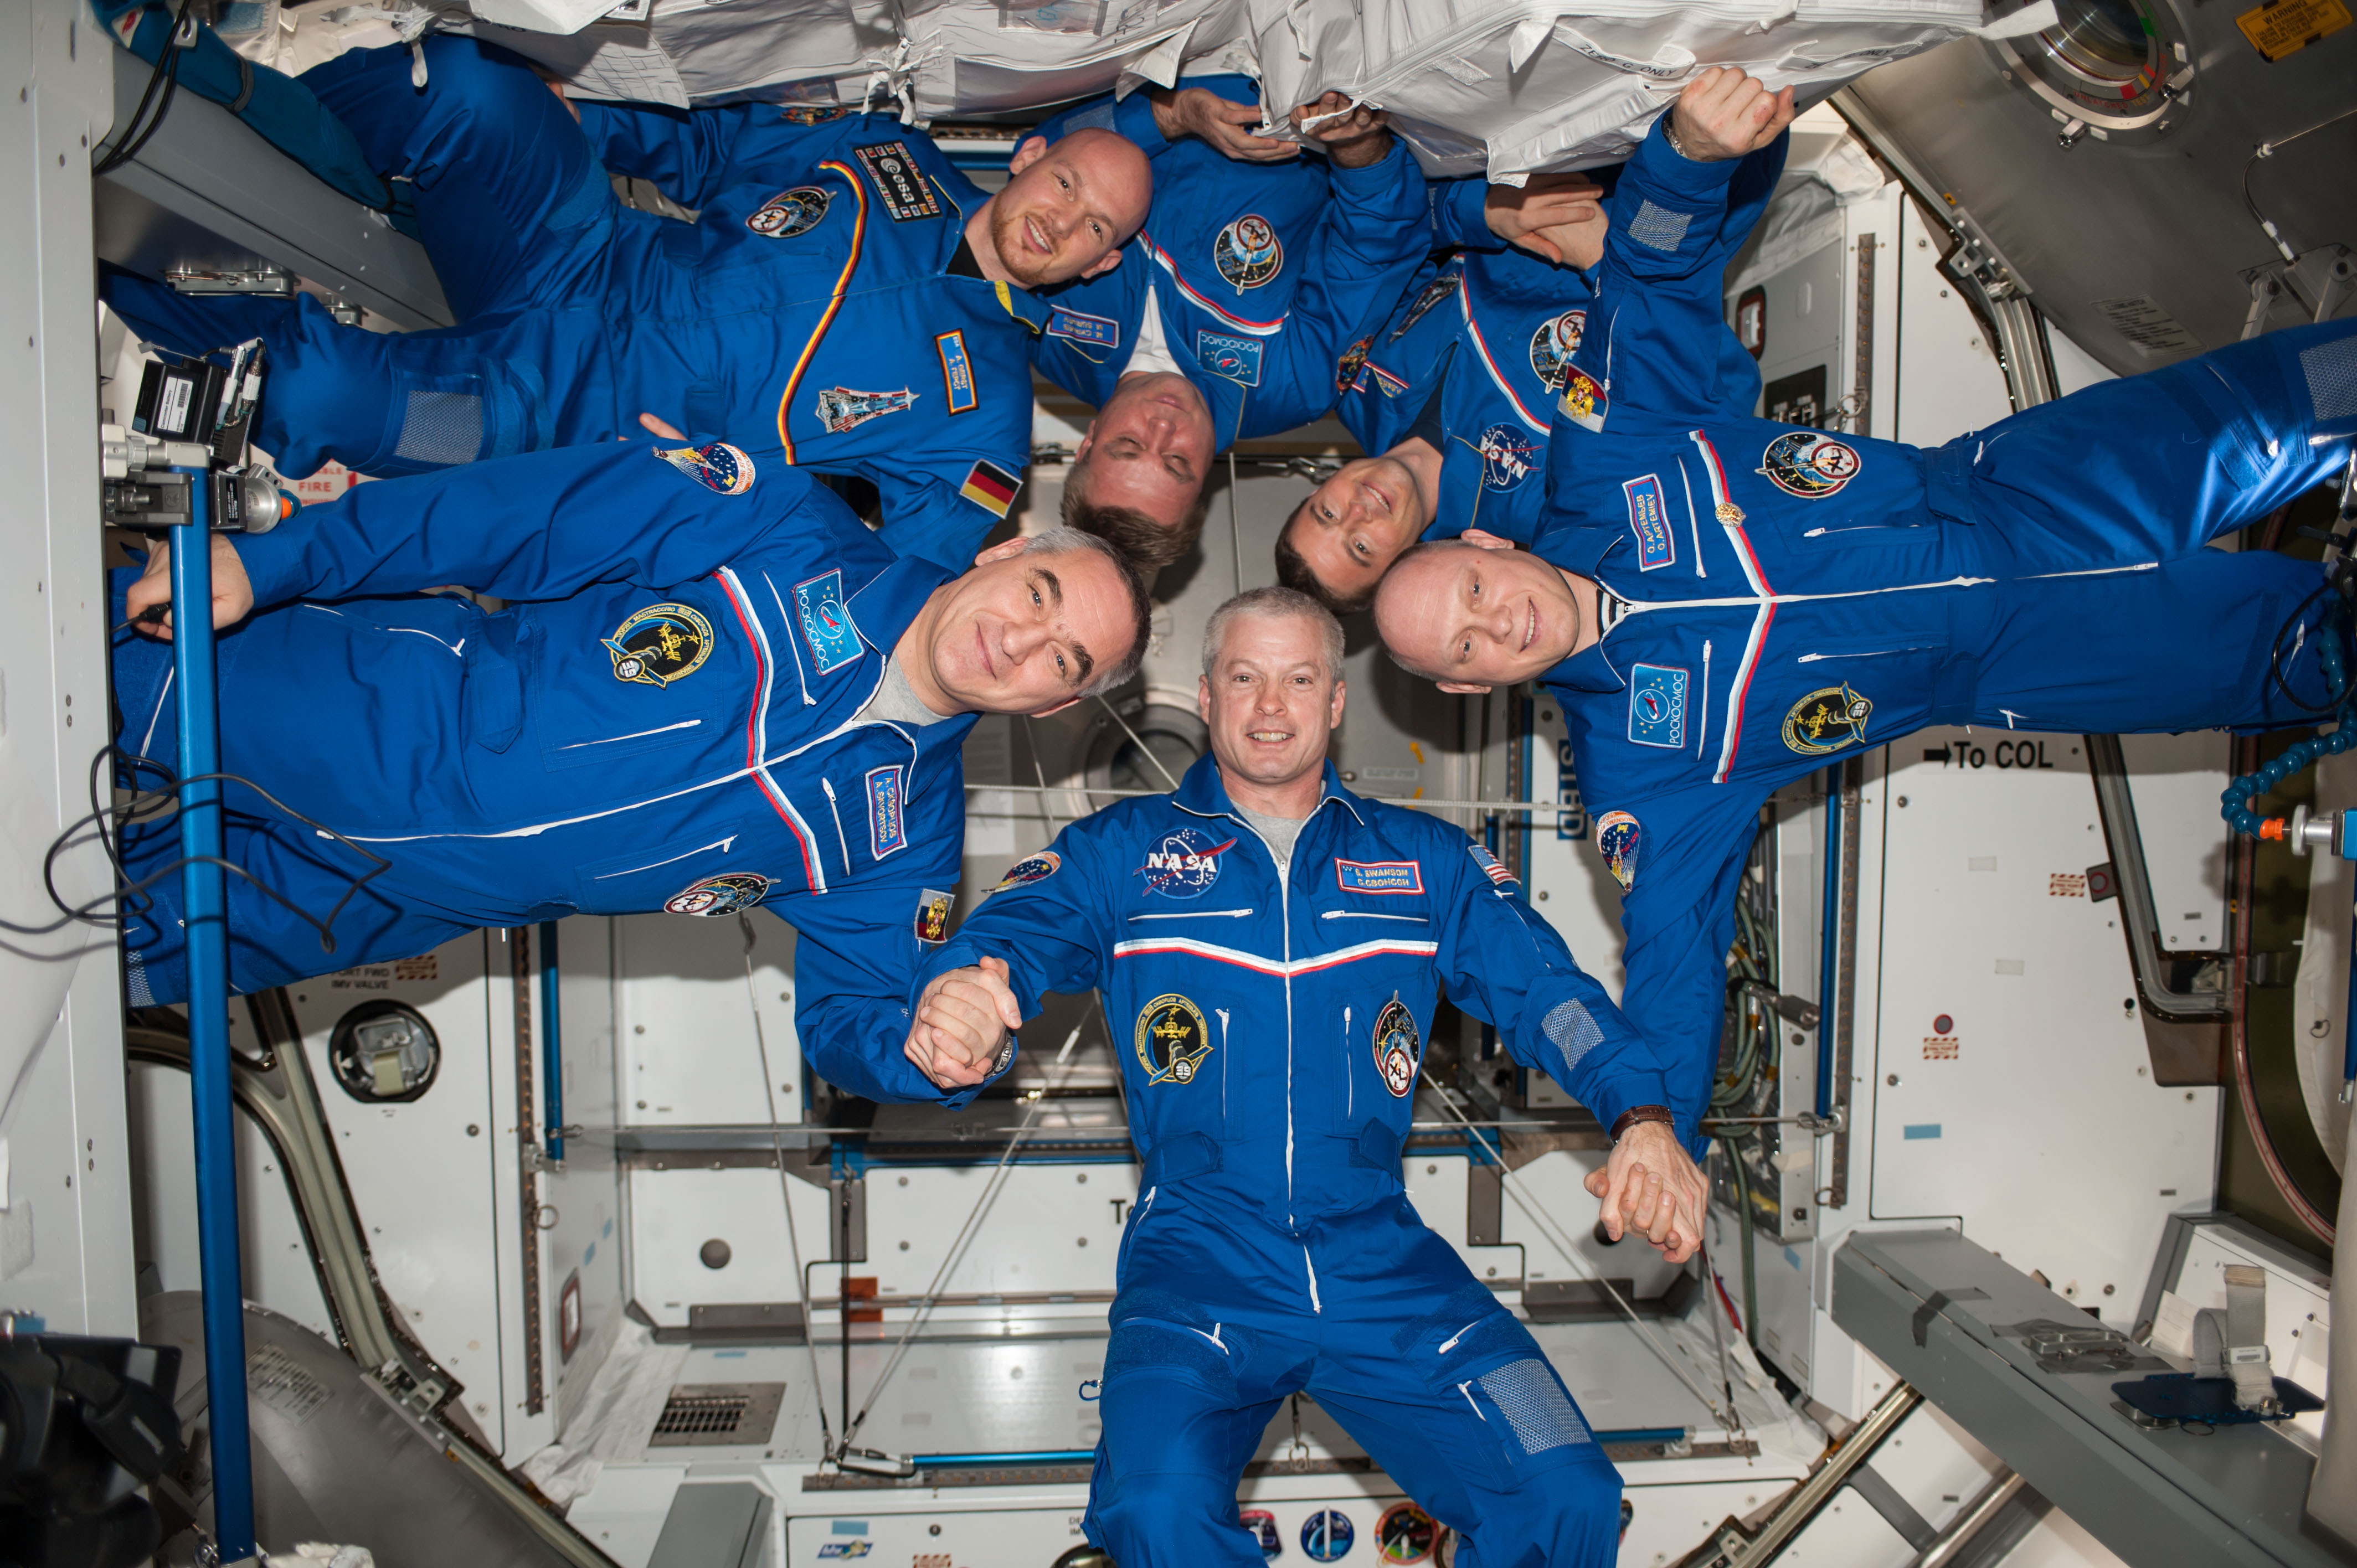 astronaut crews of the international space station role - photo #43